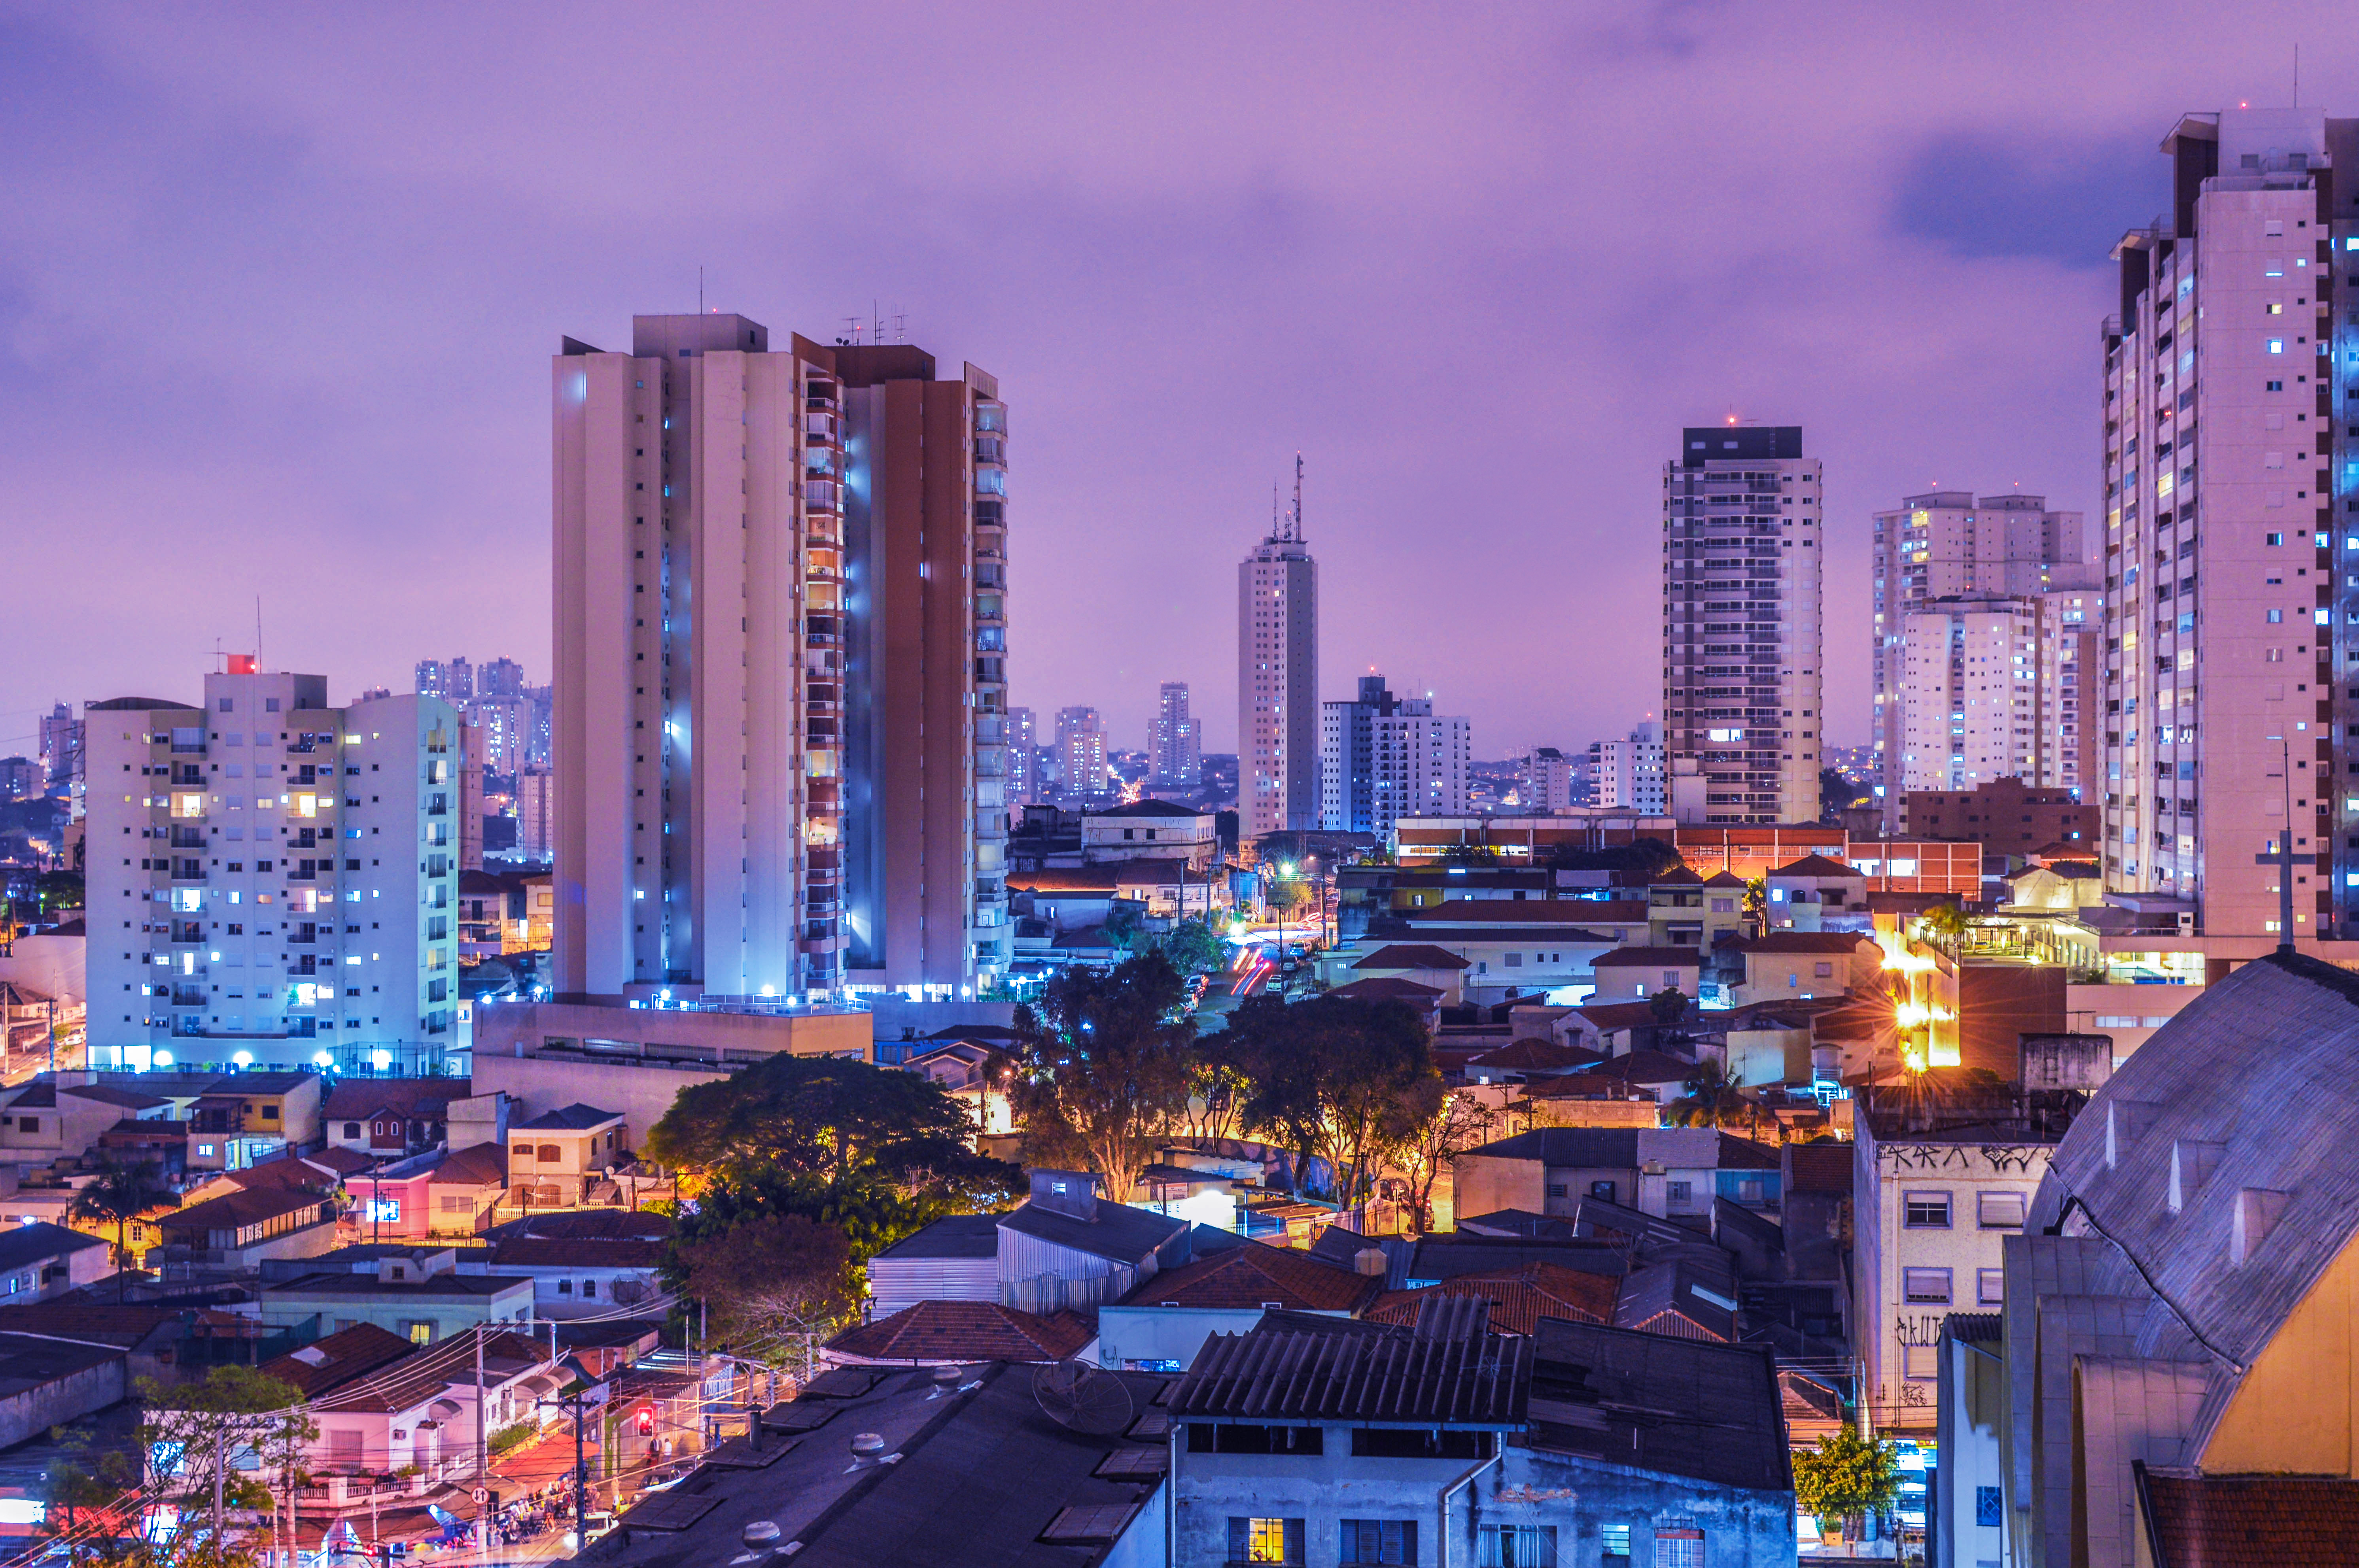 SÃO PAULO, Brazil - The Ultimate City Guide and Tourism ...